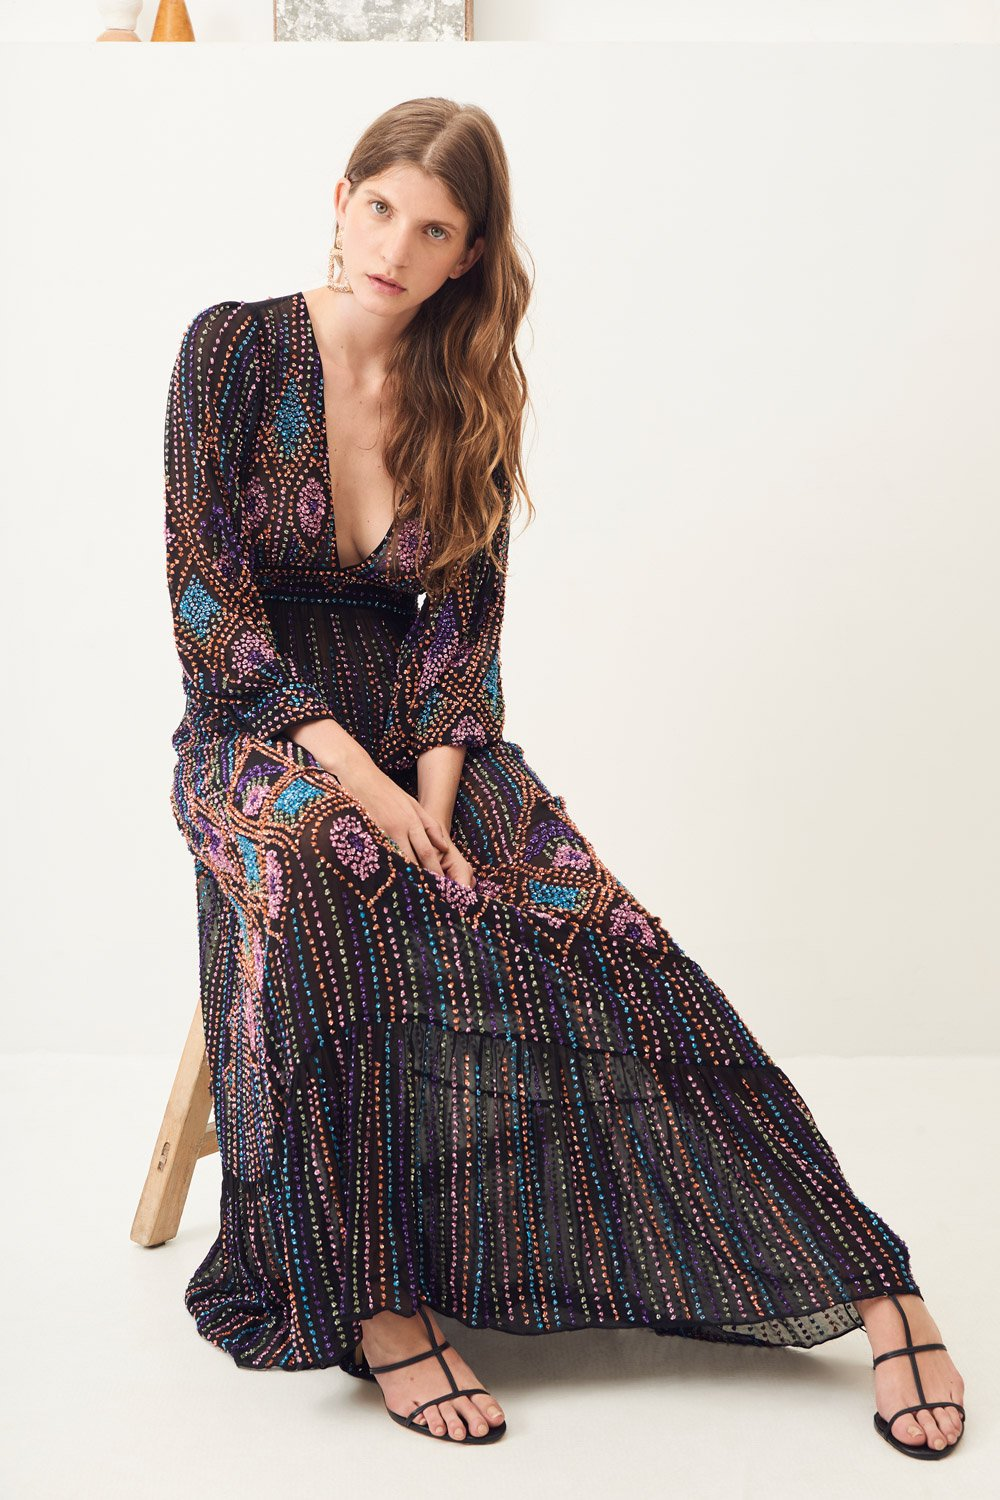 Robe longue brodée Emilia - Noir - Antik Batik (photo)